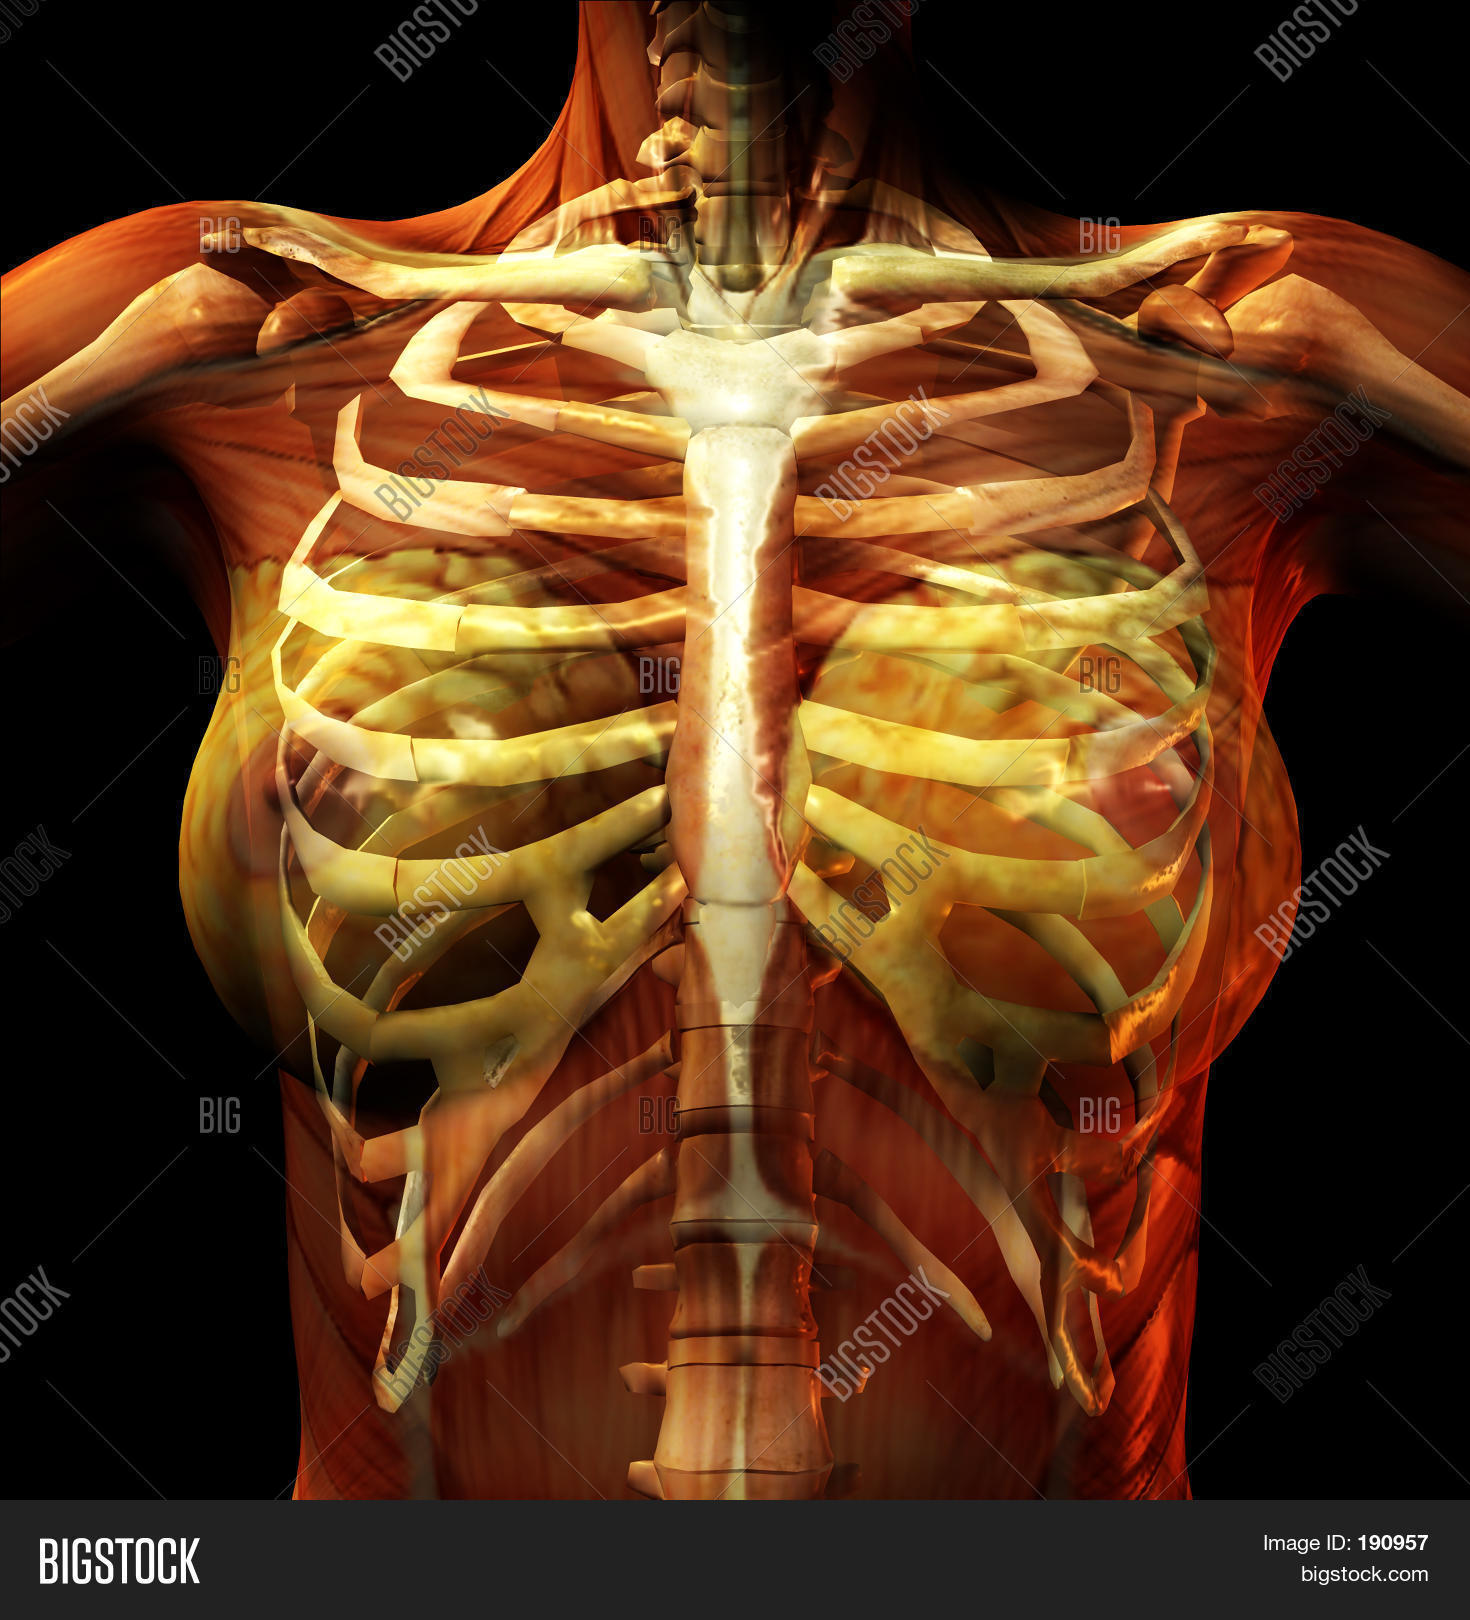 Rib Cage Image Photo Free Trial Bigstock